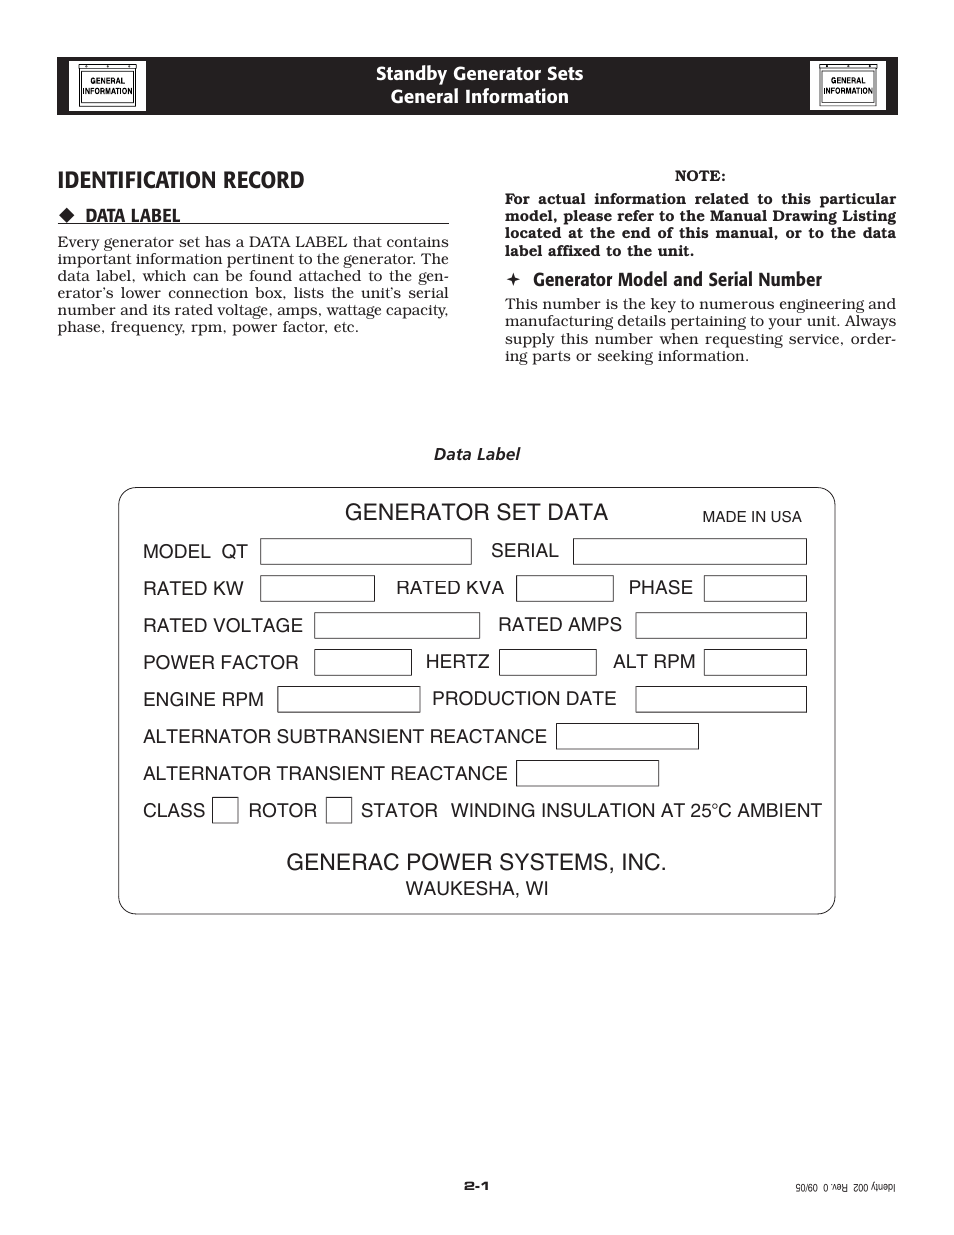 medium resolution of identification record generac power systems inc generator set data generac 20kw user manual page 6 52